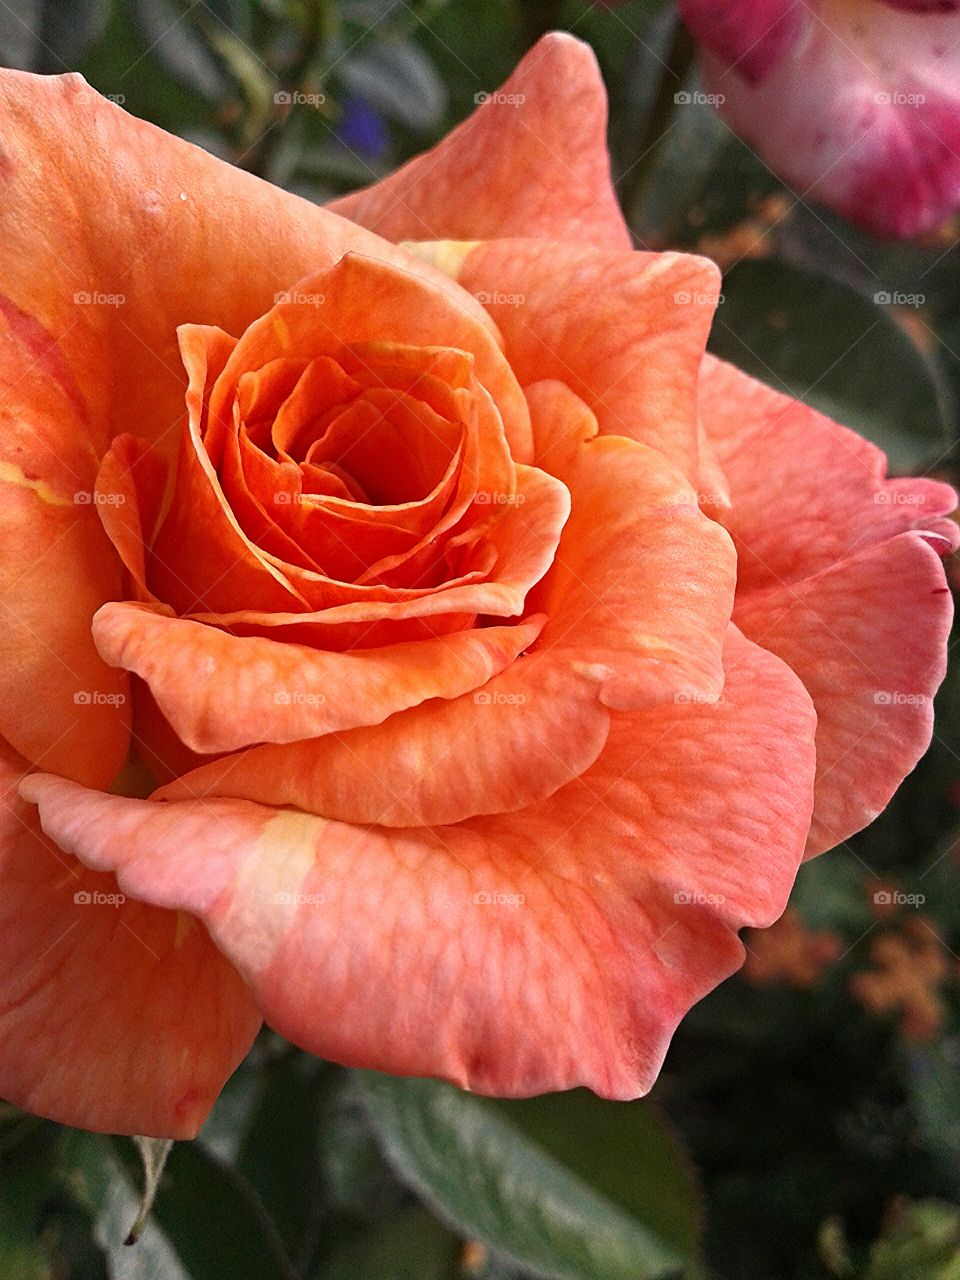 Summer heat. Hot color for a rose.